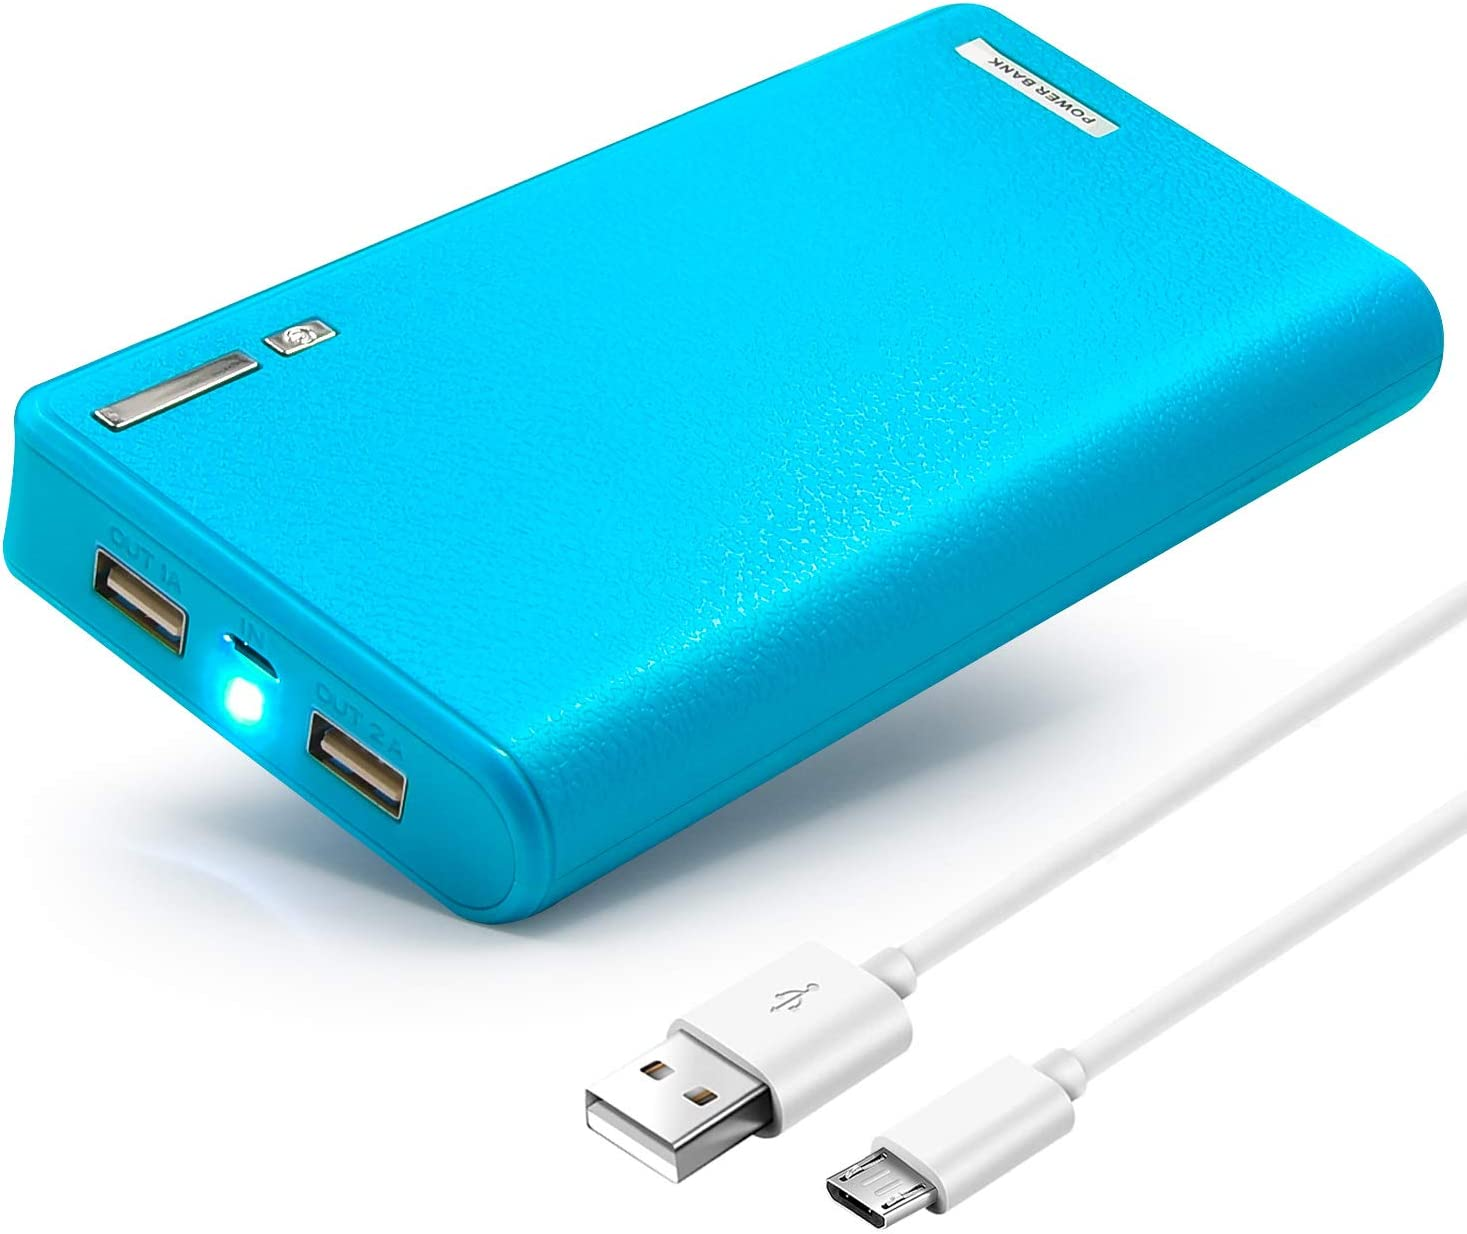 20000mAh Dual USB Output Power Bank Portable Quick High Capacity Battery Backup Charger with LED Light for iPhone iPad Samsung Galaxy More (Blue)